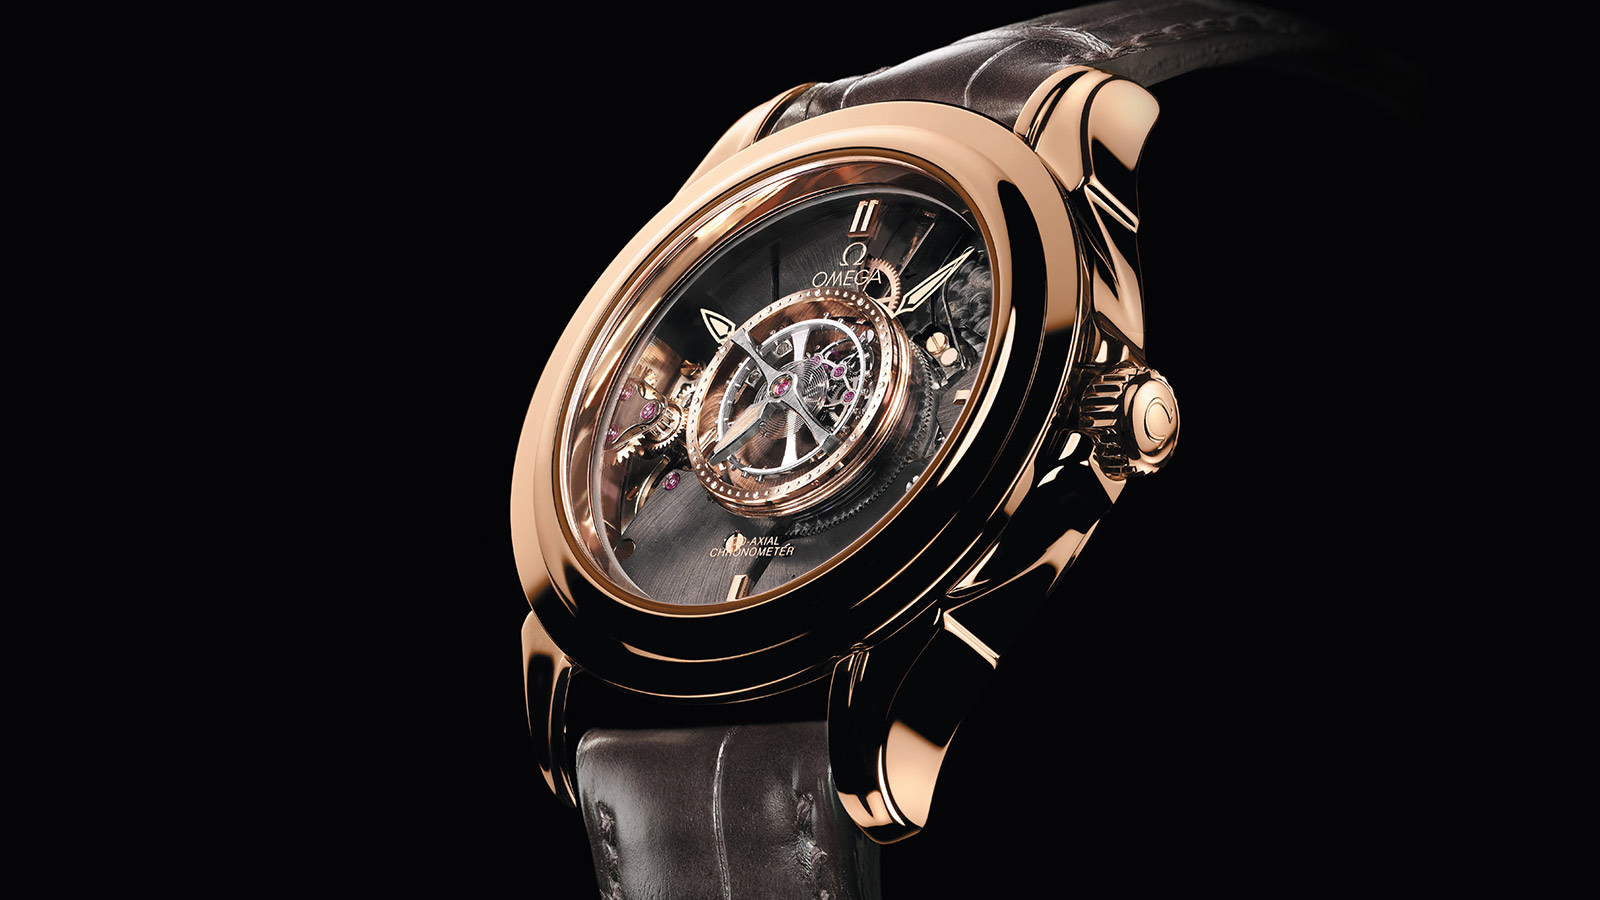 De Ville トゥールビヨン Tourbillon Co‑Axial Numbered Edition 38.7 mm - 513.53.39.21.99.001 - ビュー 1